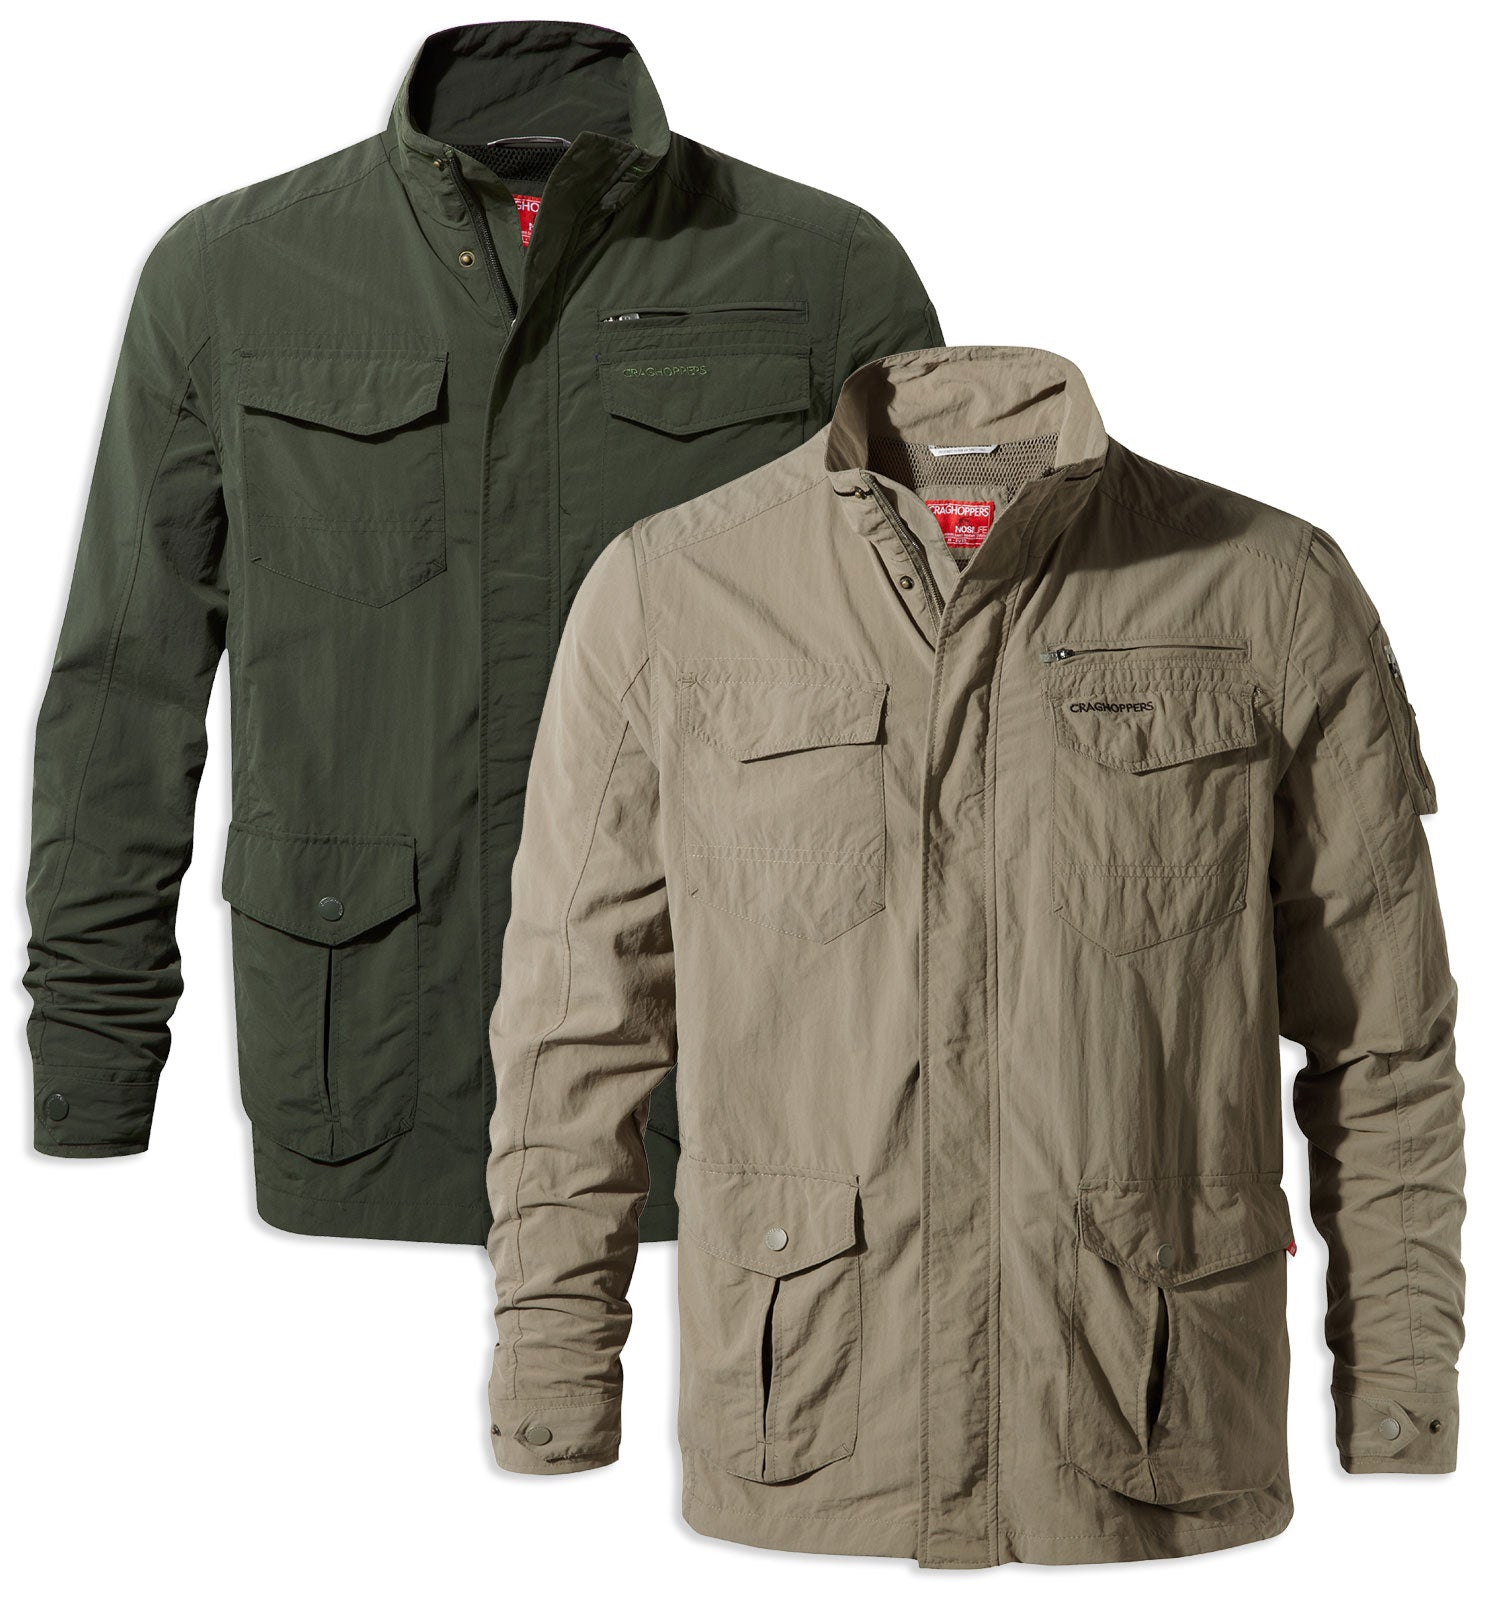 Craghoppers NosiLife Adventure Jacket I in Khaki and Pebble